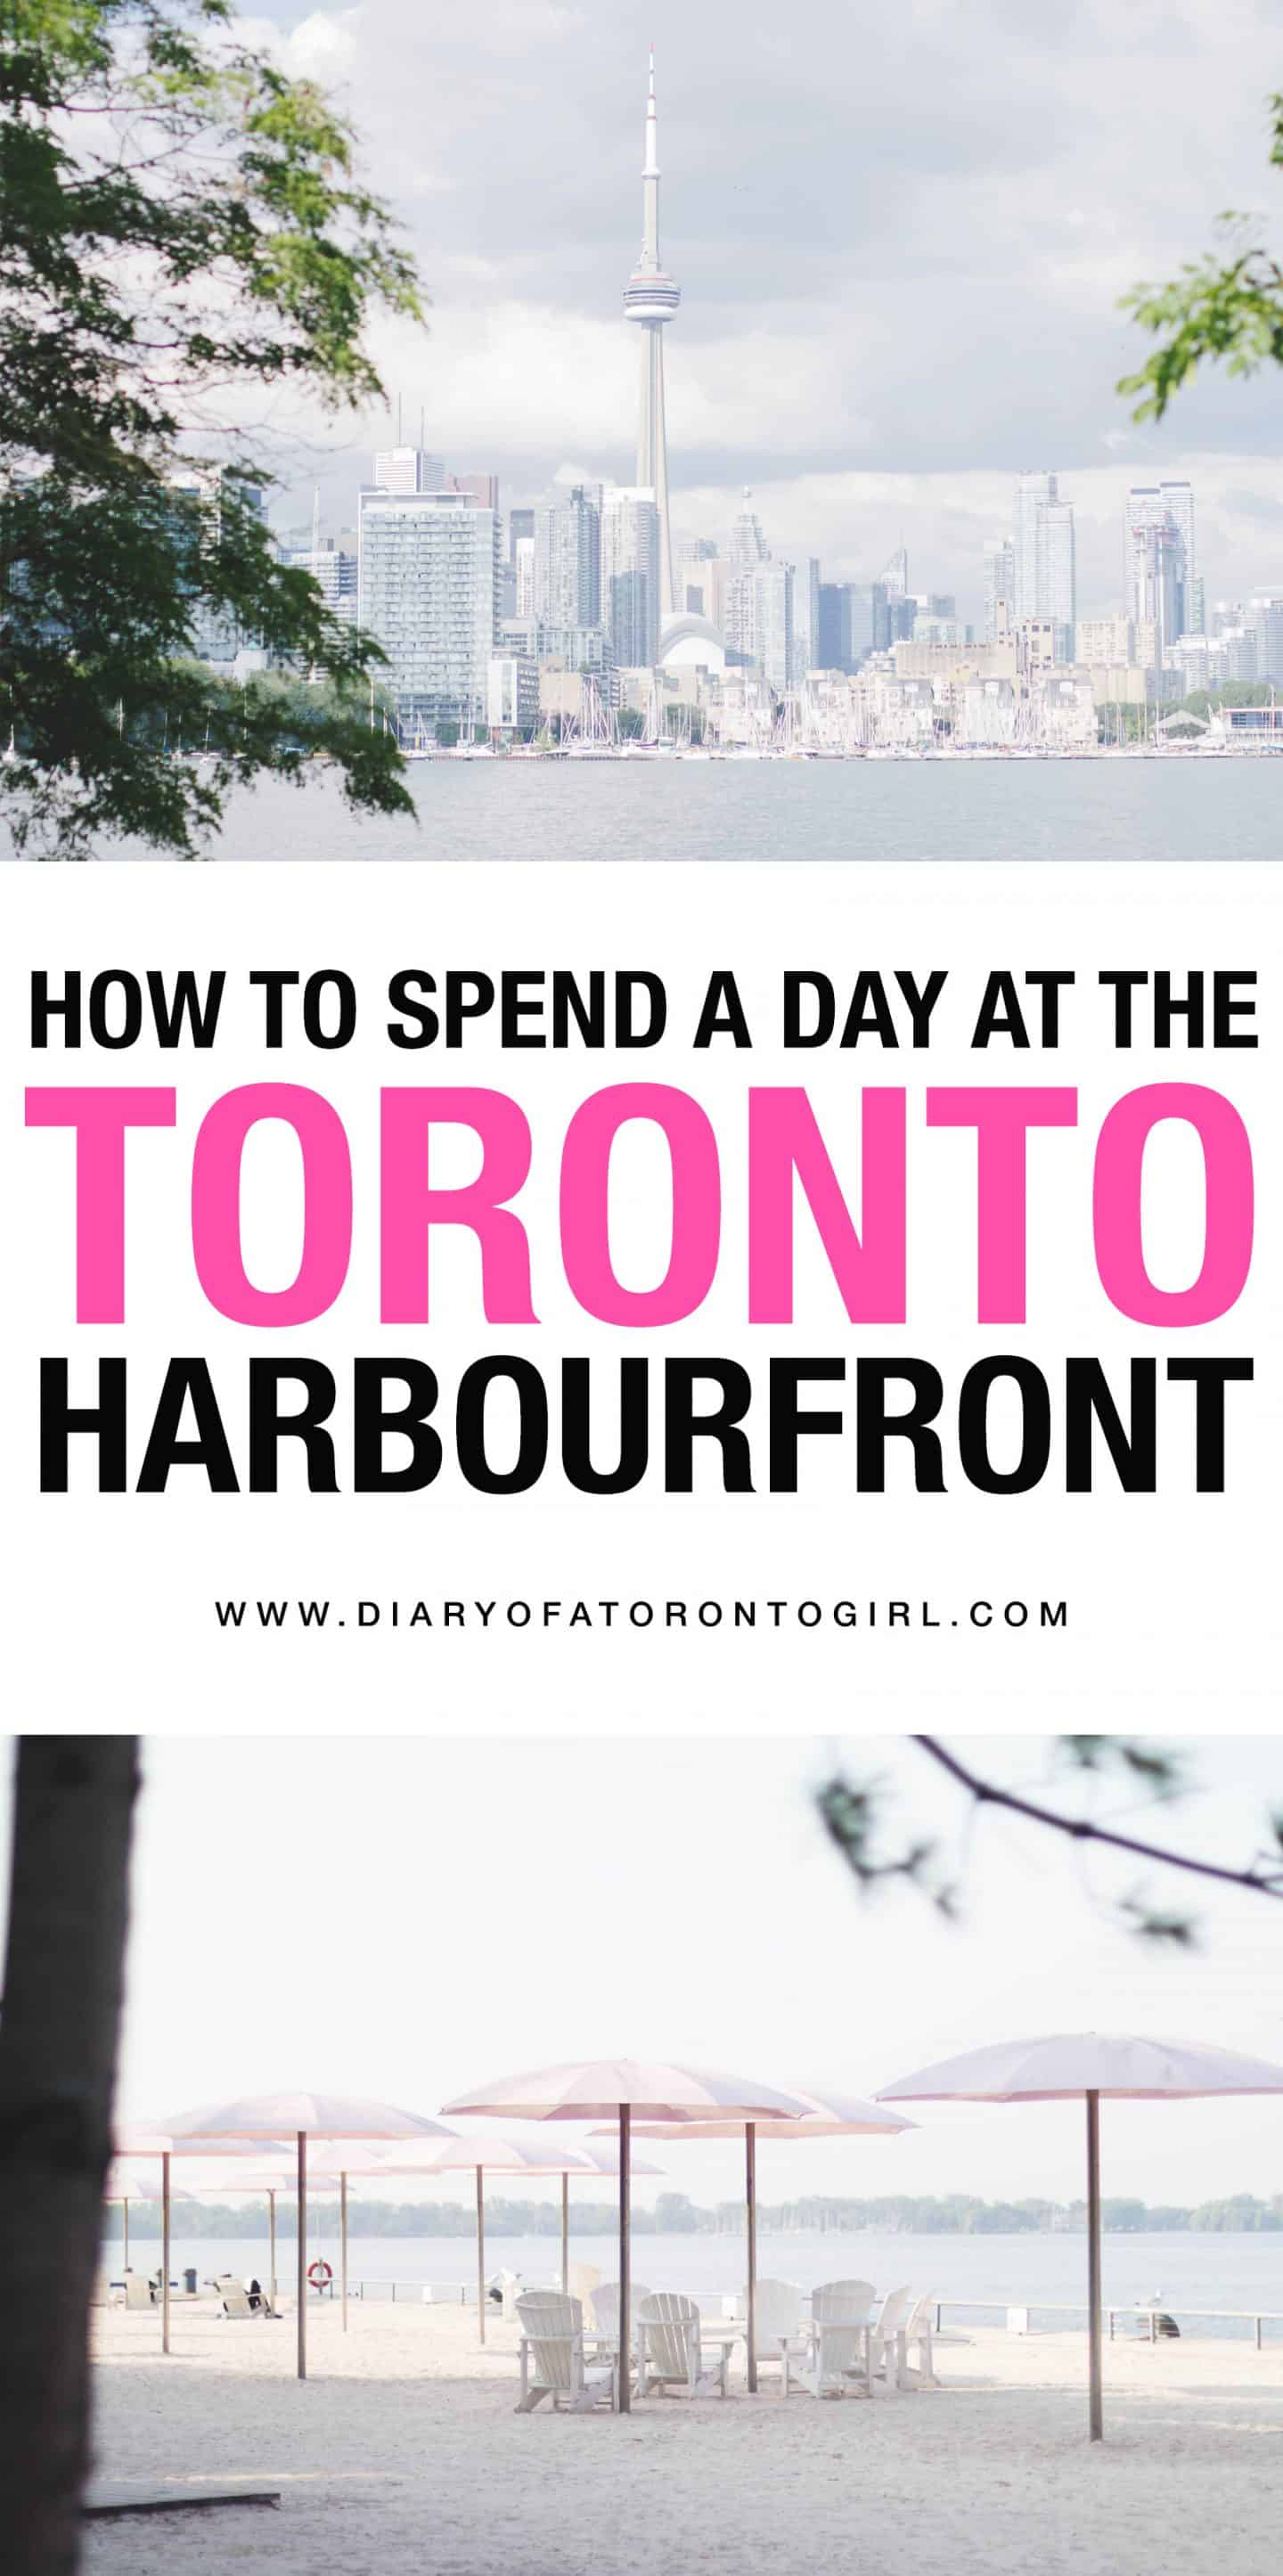 The Toronto Harbourfront neighbourhood is filled with tons of fun things to do! Here's your guide on how to spend a day exploring the waterfront area.